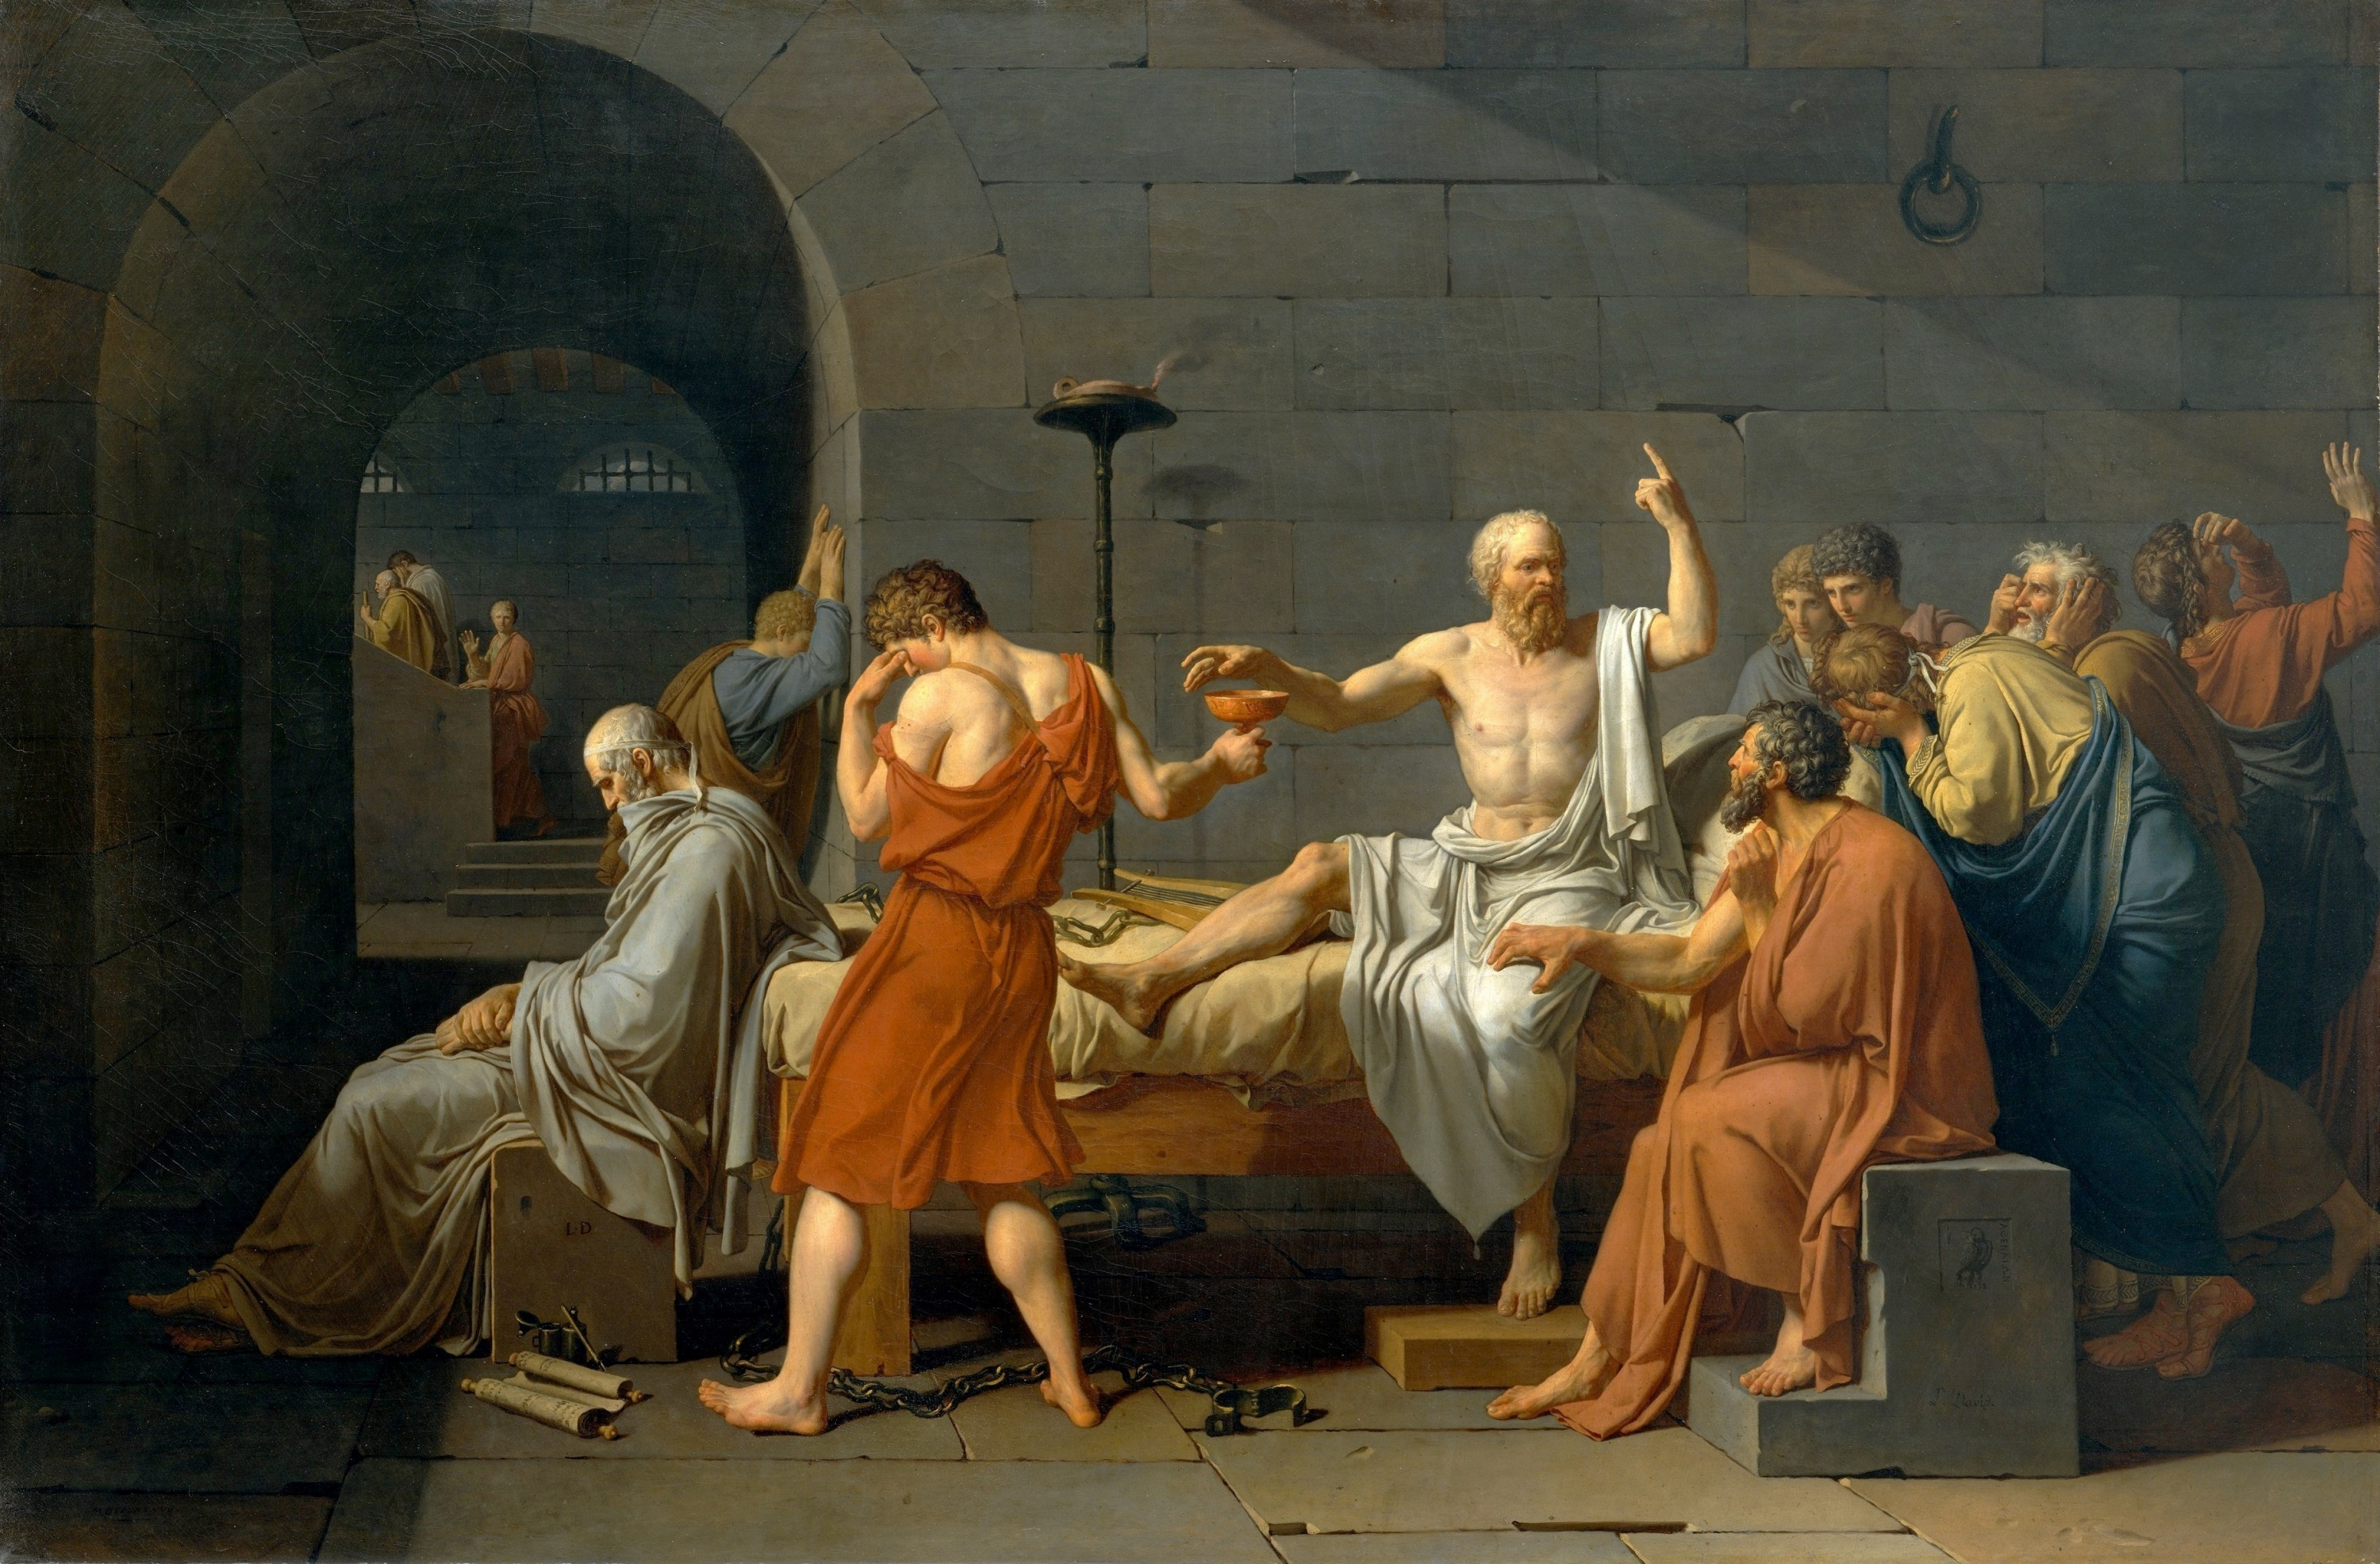 an analysis of the character of socrates as depicted in euthyphro by plato This essay will not only test my ability to recognize and engage philosophical concepts and analysis  plato socrates plato's euthyphro essay sample.